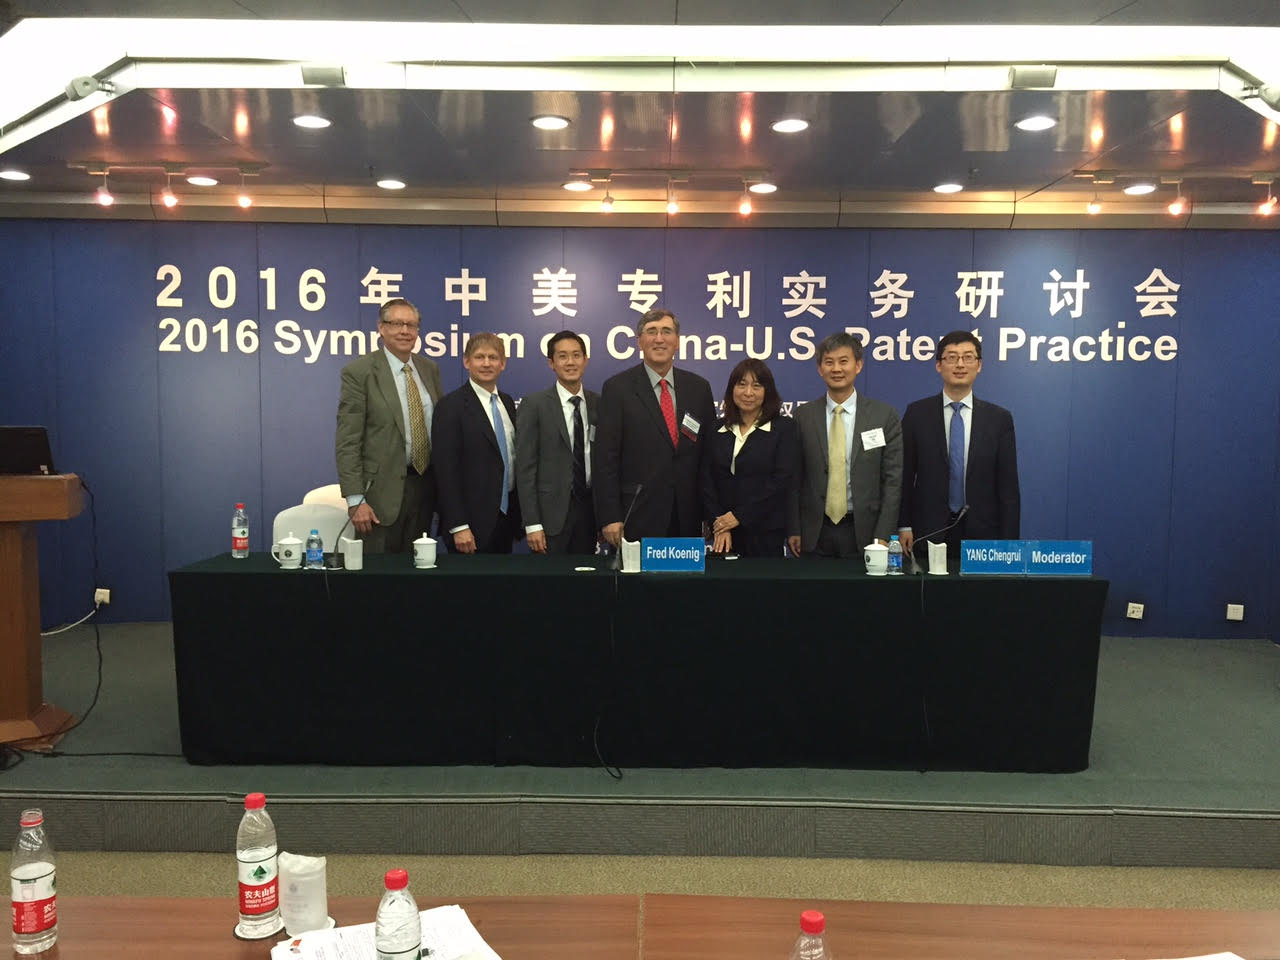 Beijing meeting 2016